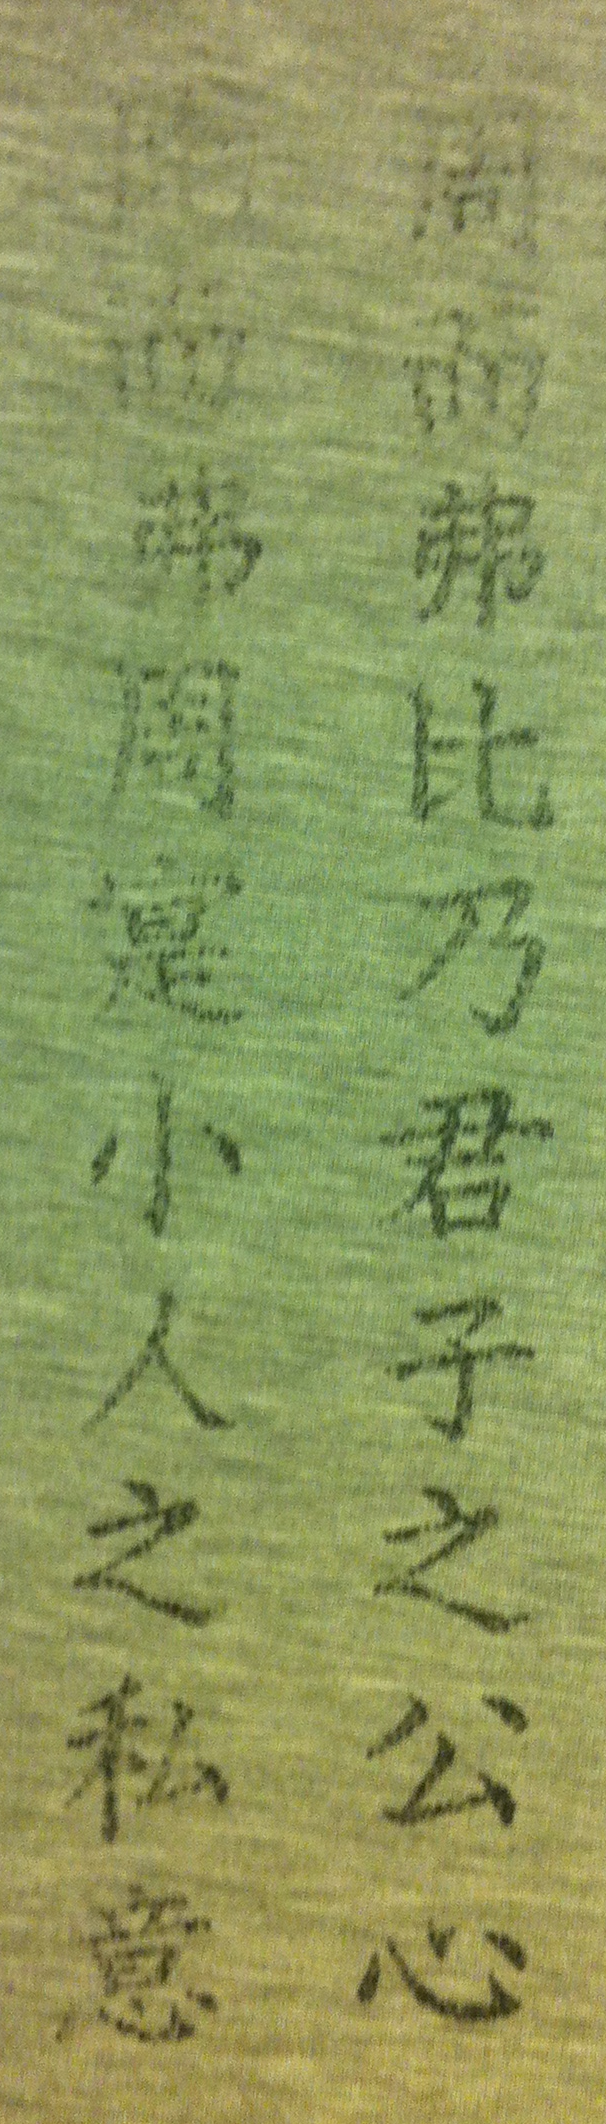 Cloth Calligraphy from Korea